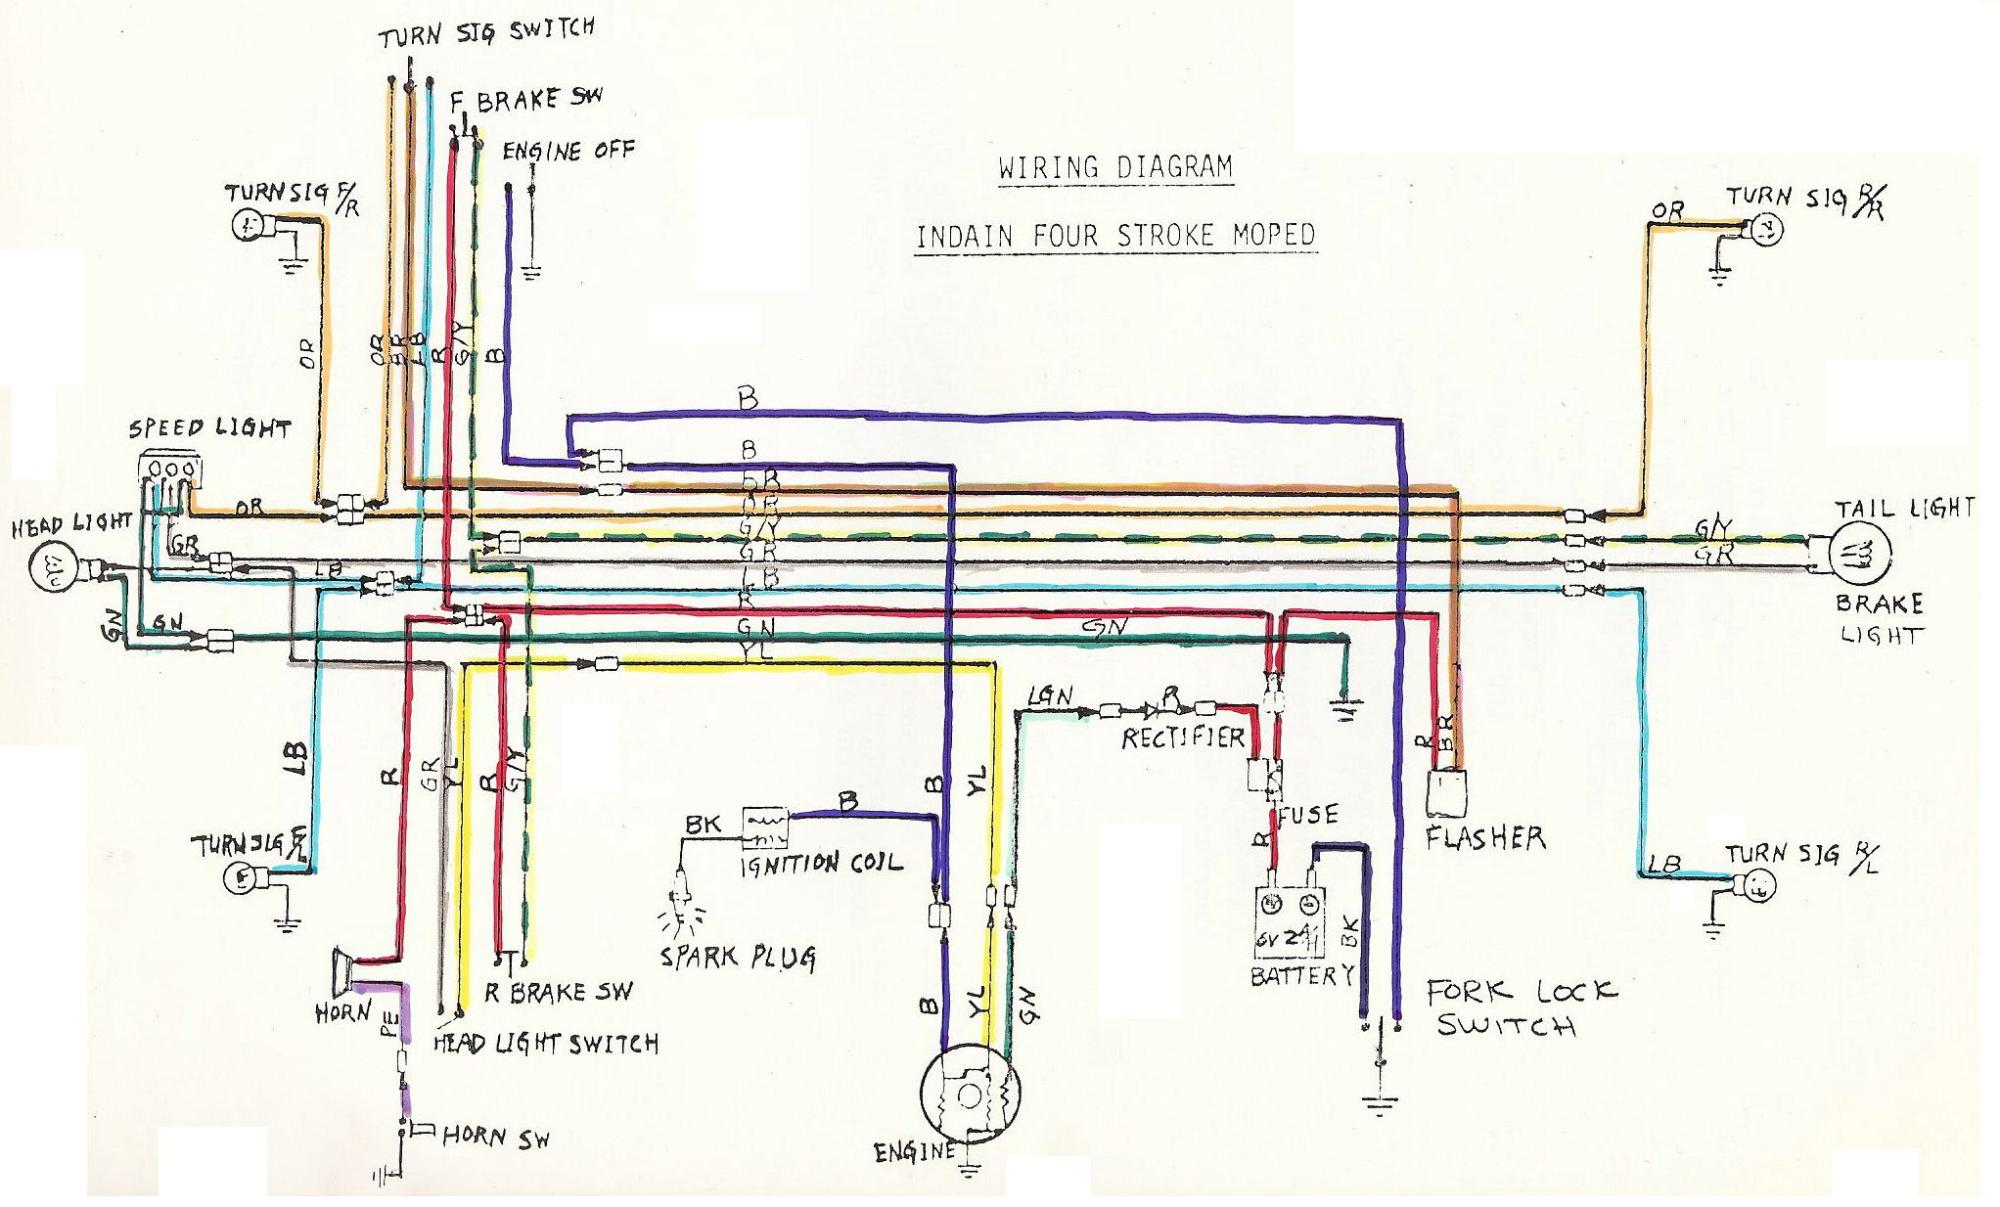 hight resolution of 1983 honda hobbit wiring diagram trusted wiring diagram rh dafpods co